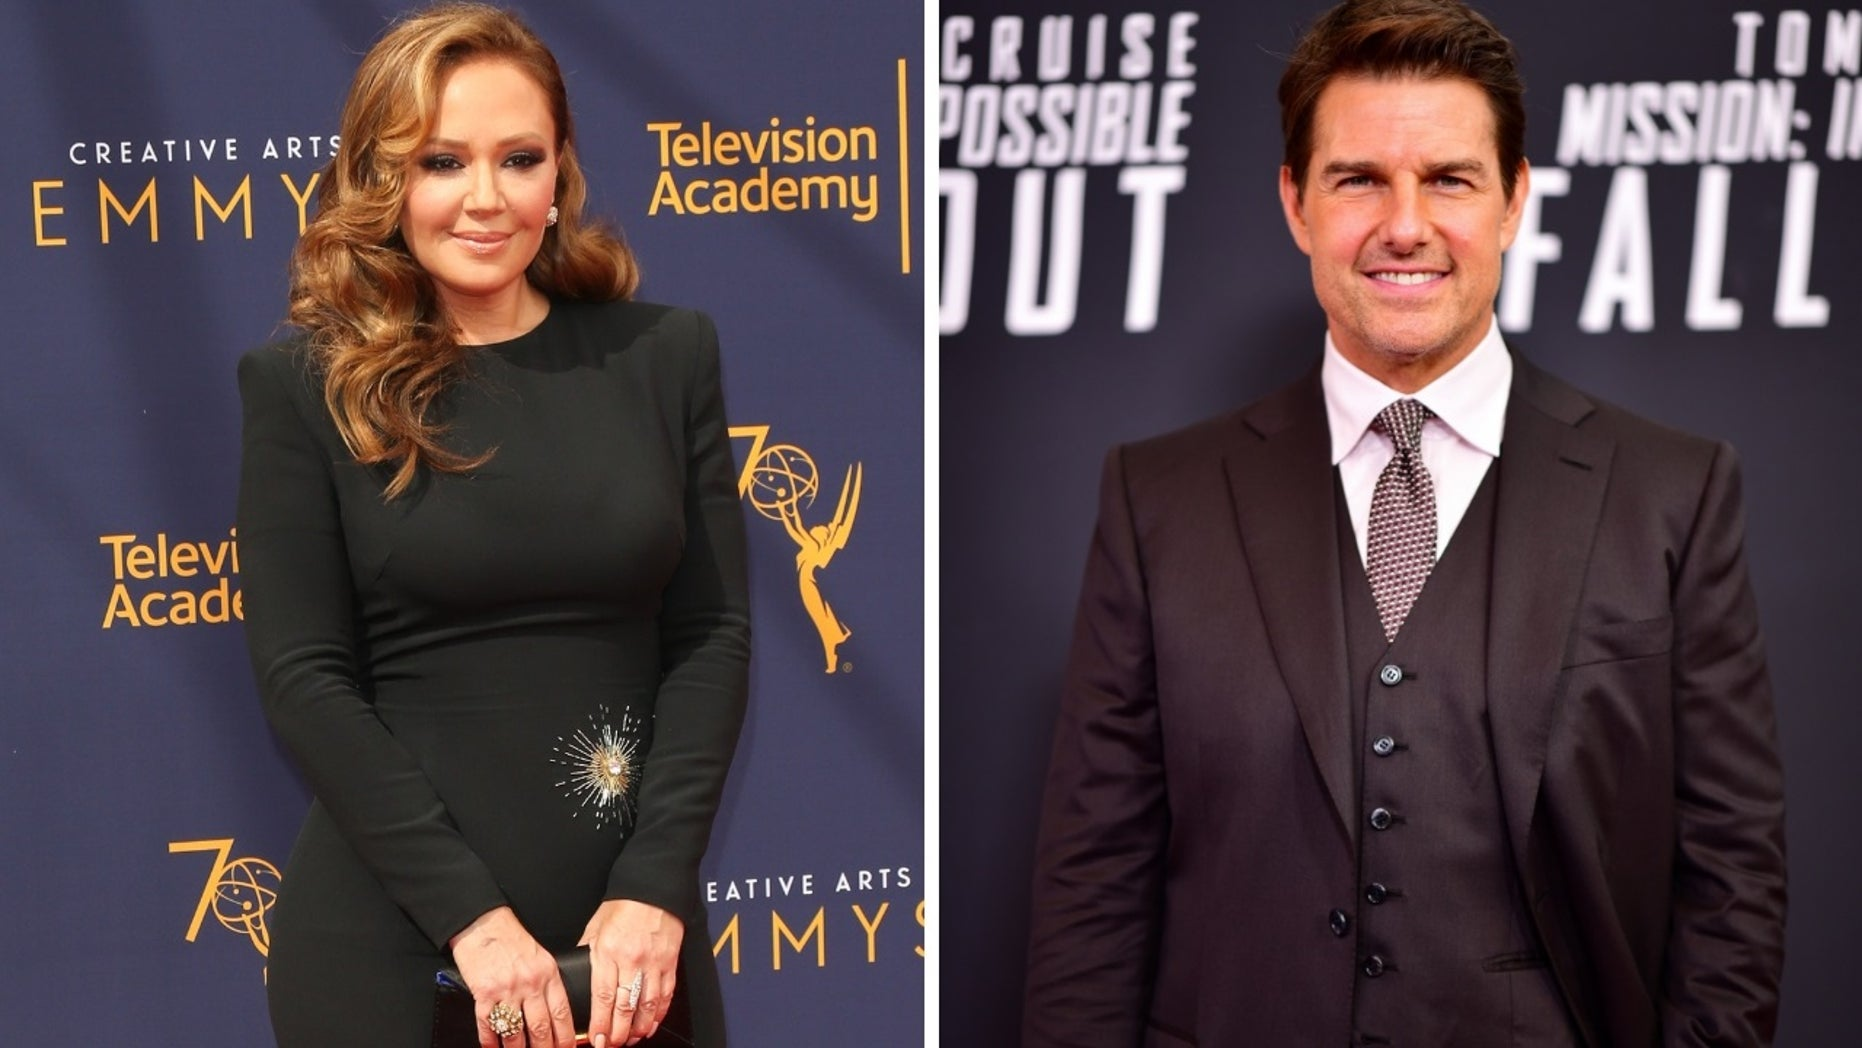 Leah Remini claims Tom Cruise knew of the abuses going on within the Church of Scientology.